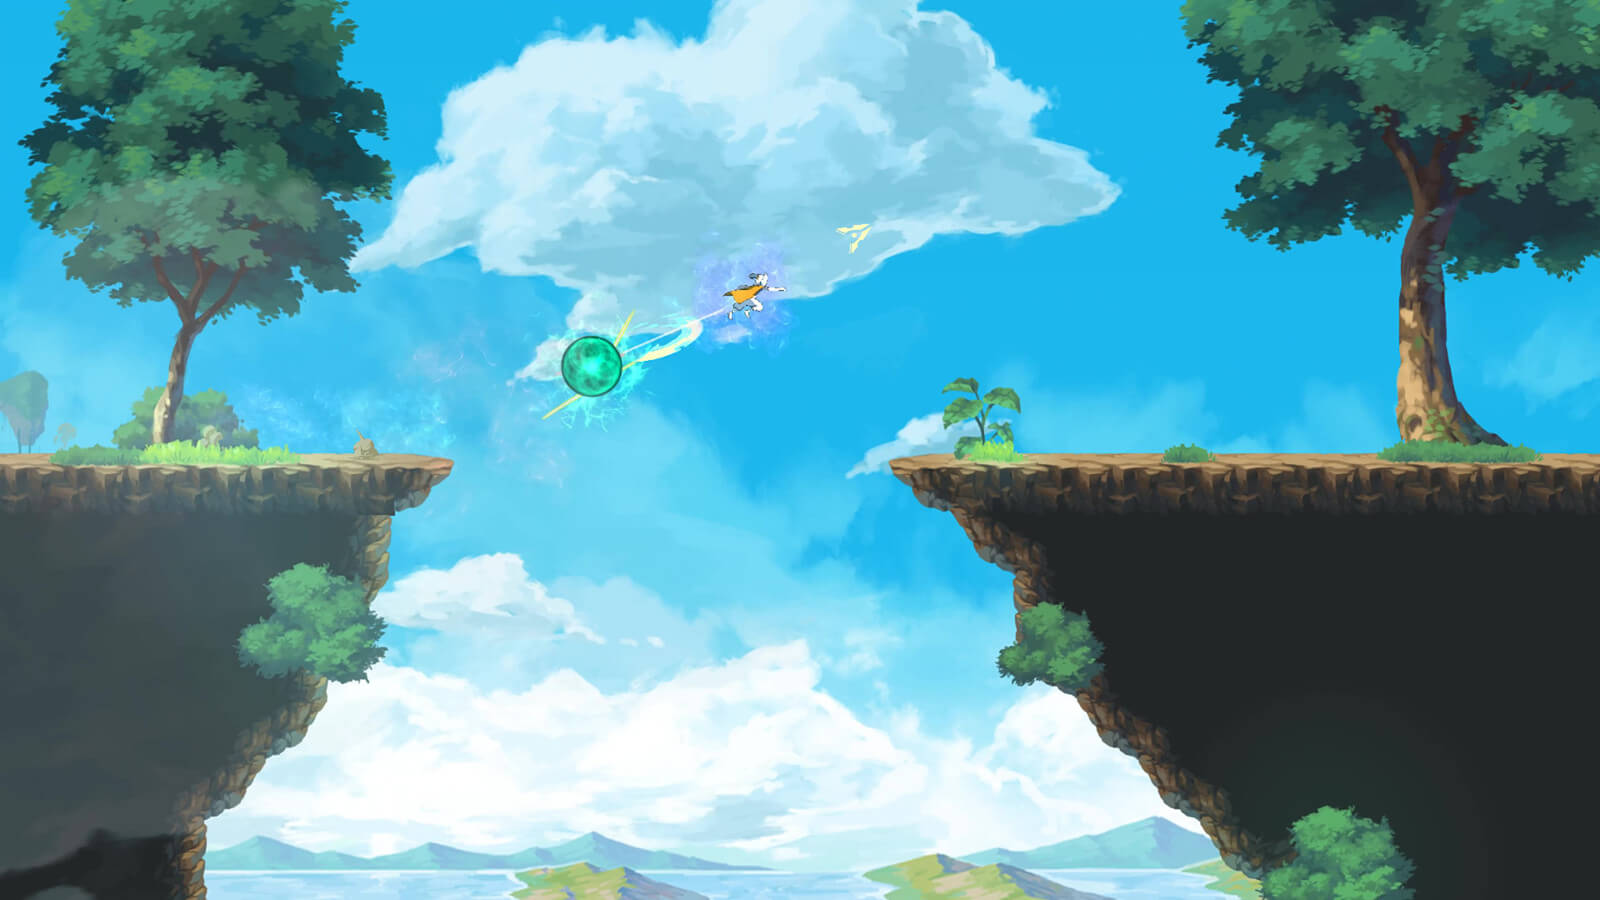 Character leaps over a chasm in the sky